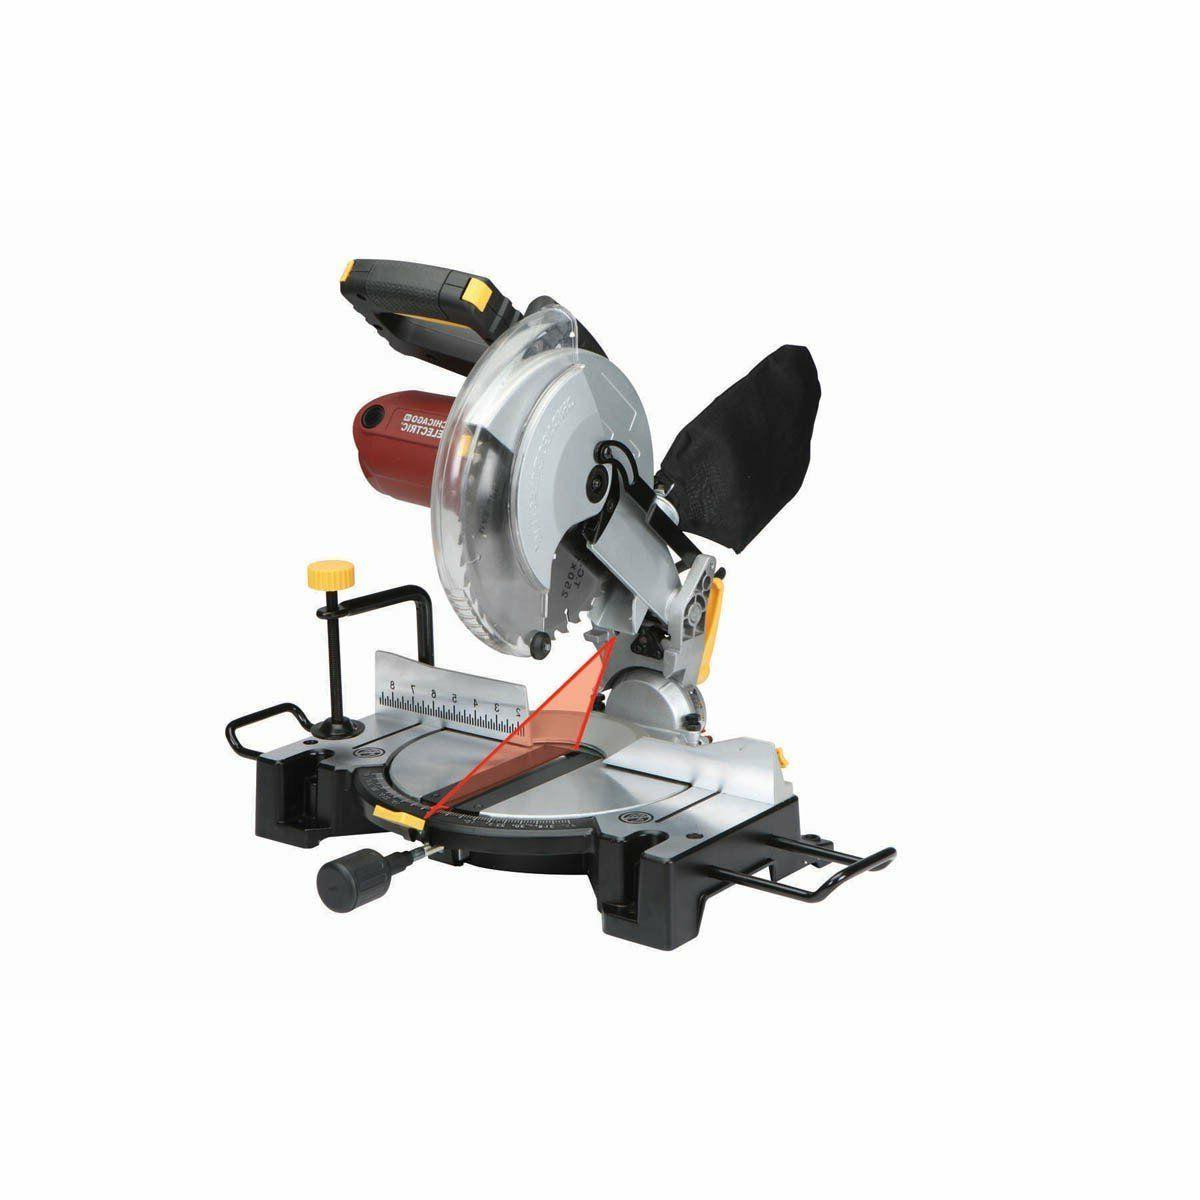 10 inch compound miter saw with laser